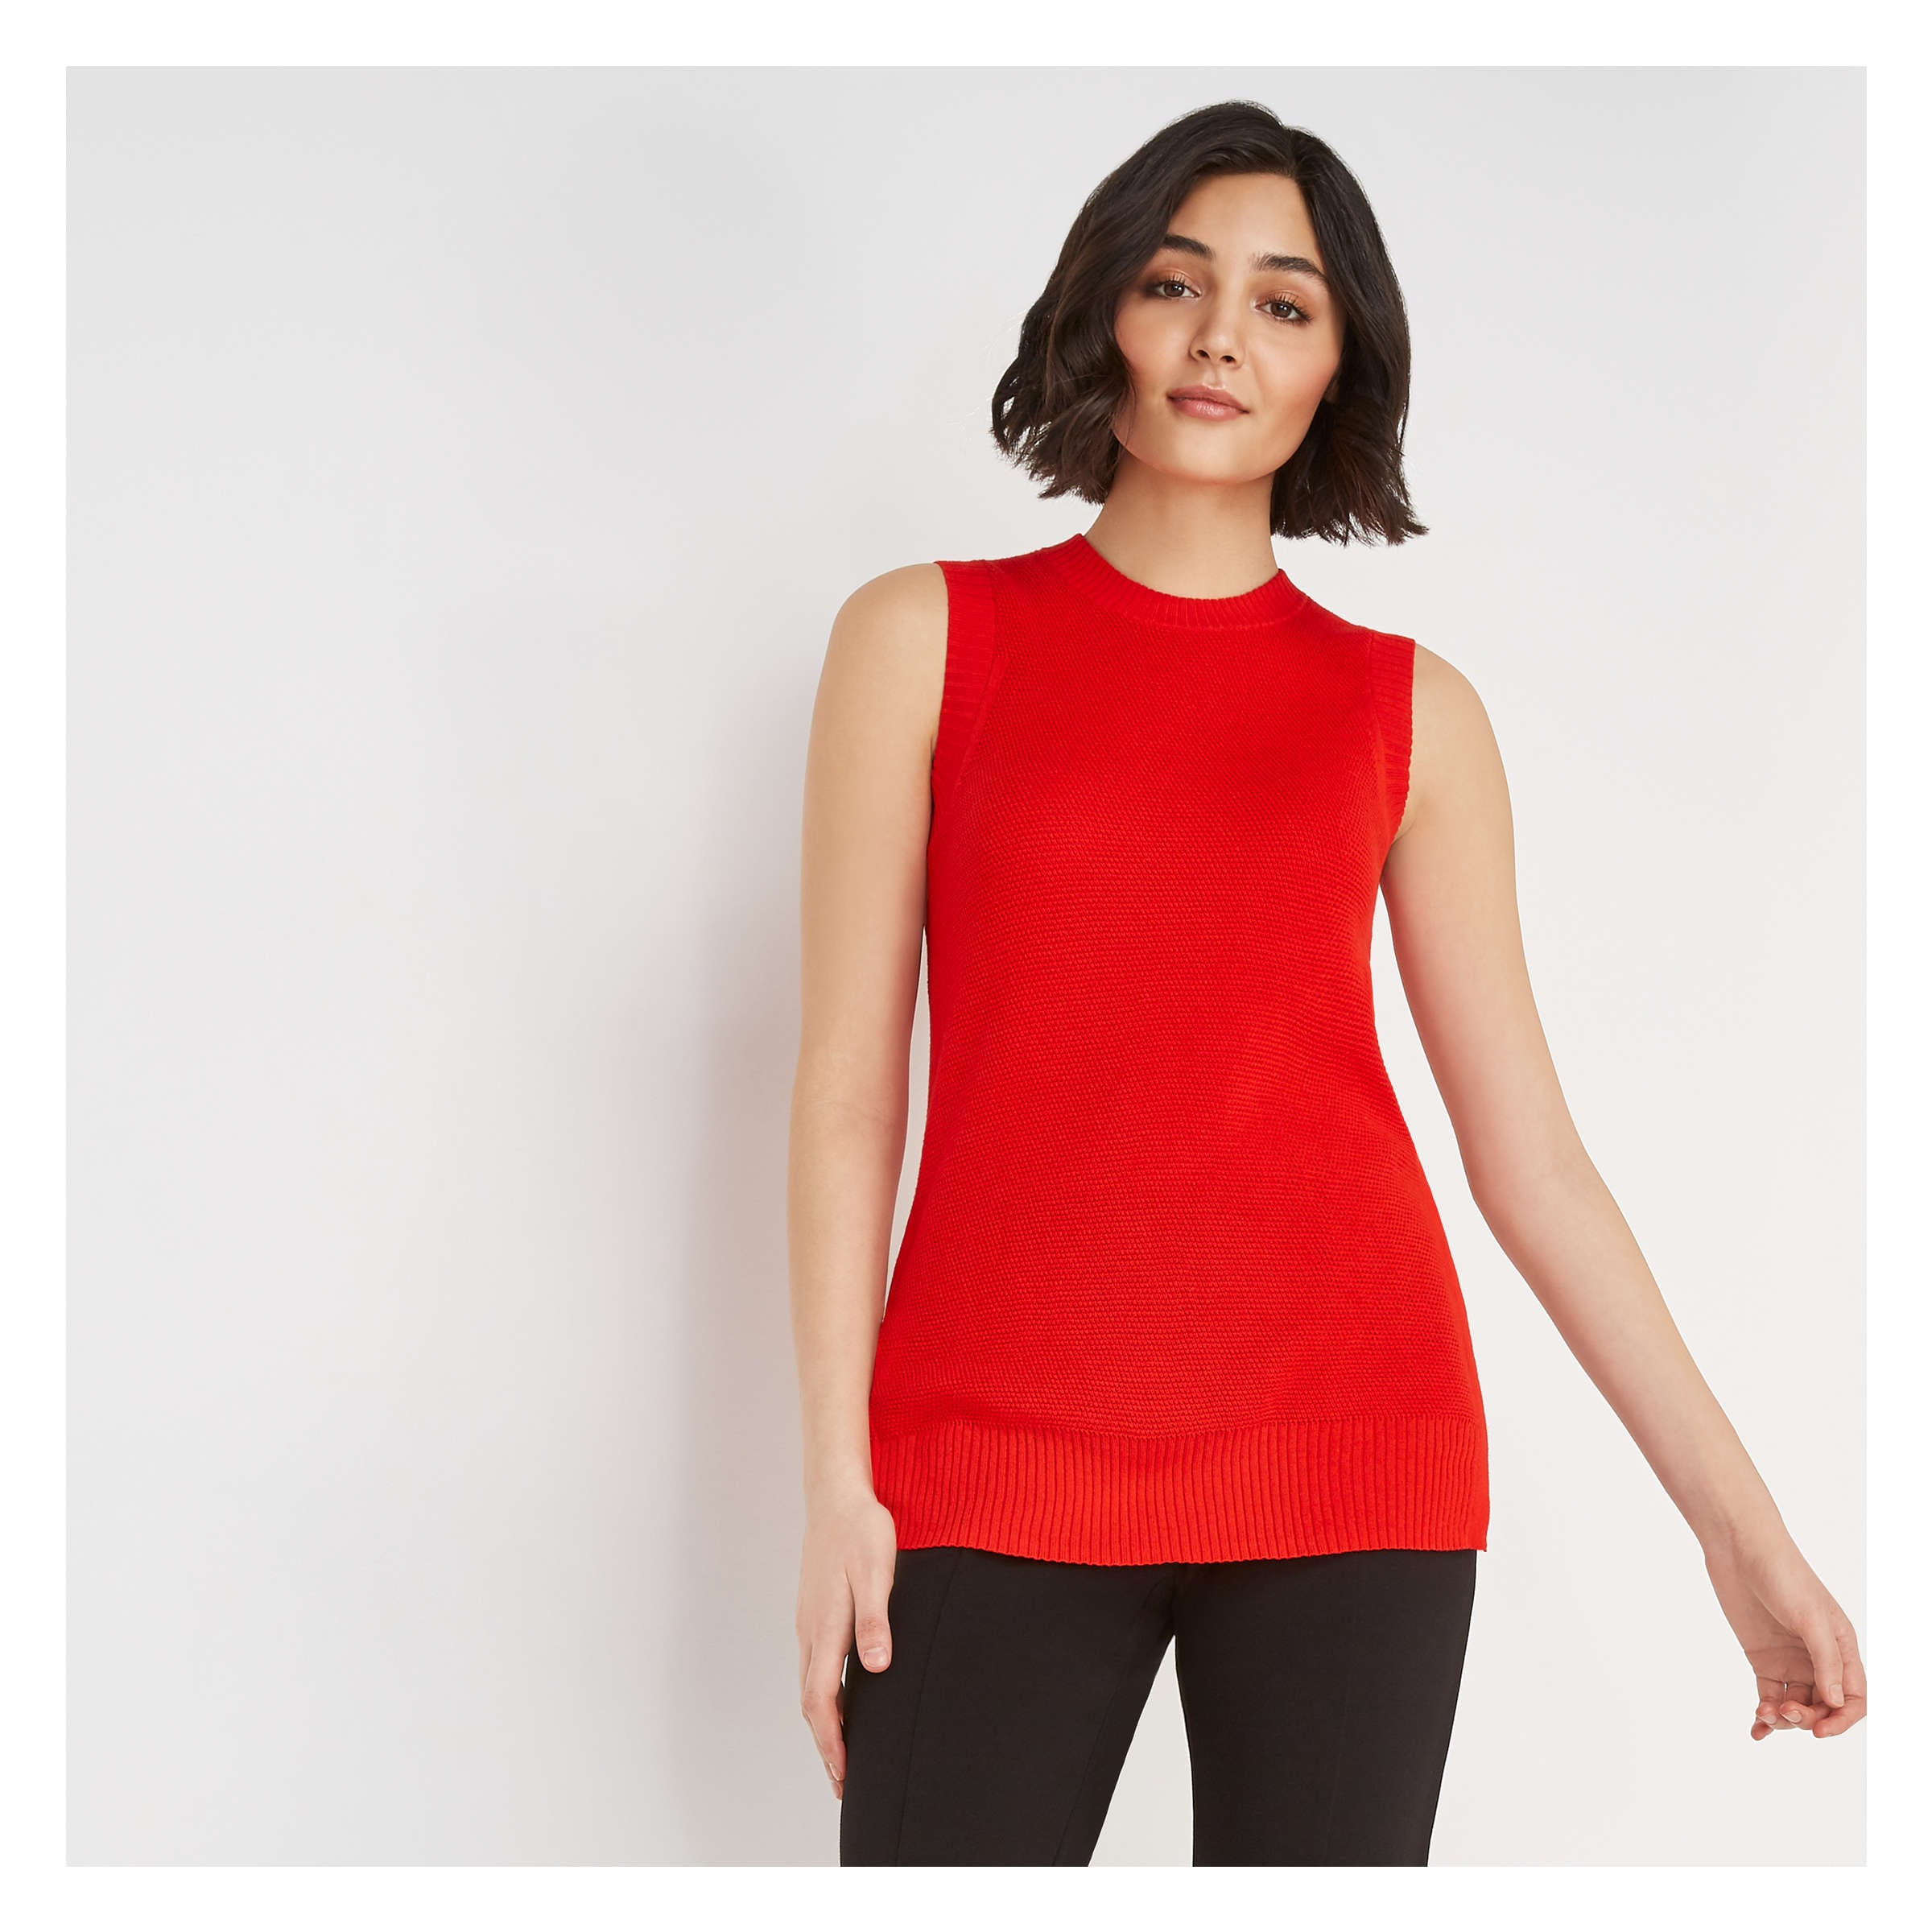 f294f0515a2 Sleeveless Tunic Sweater in Fire Red from Joe Fresh